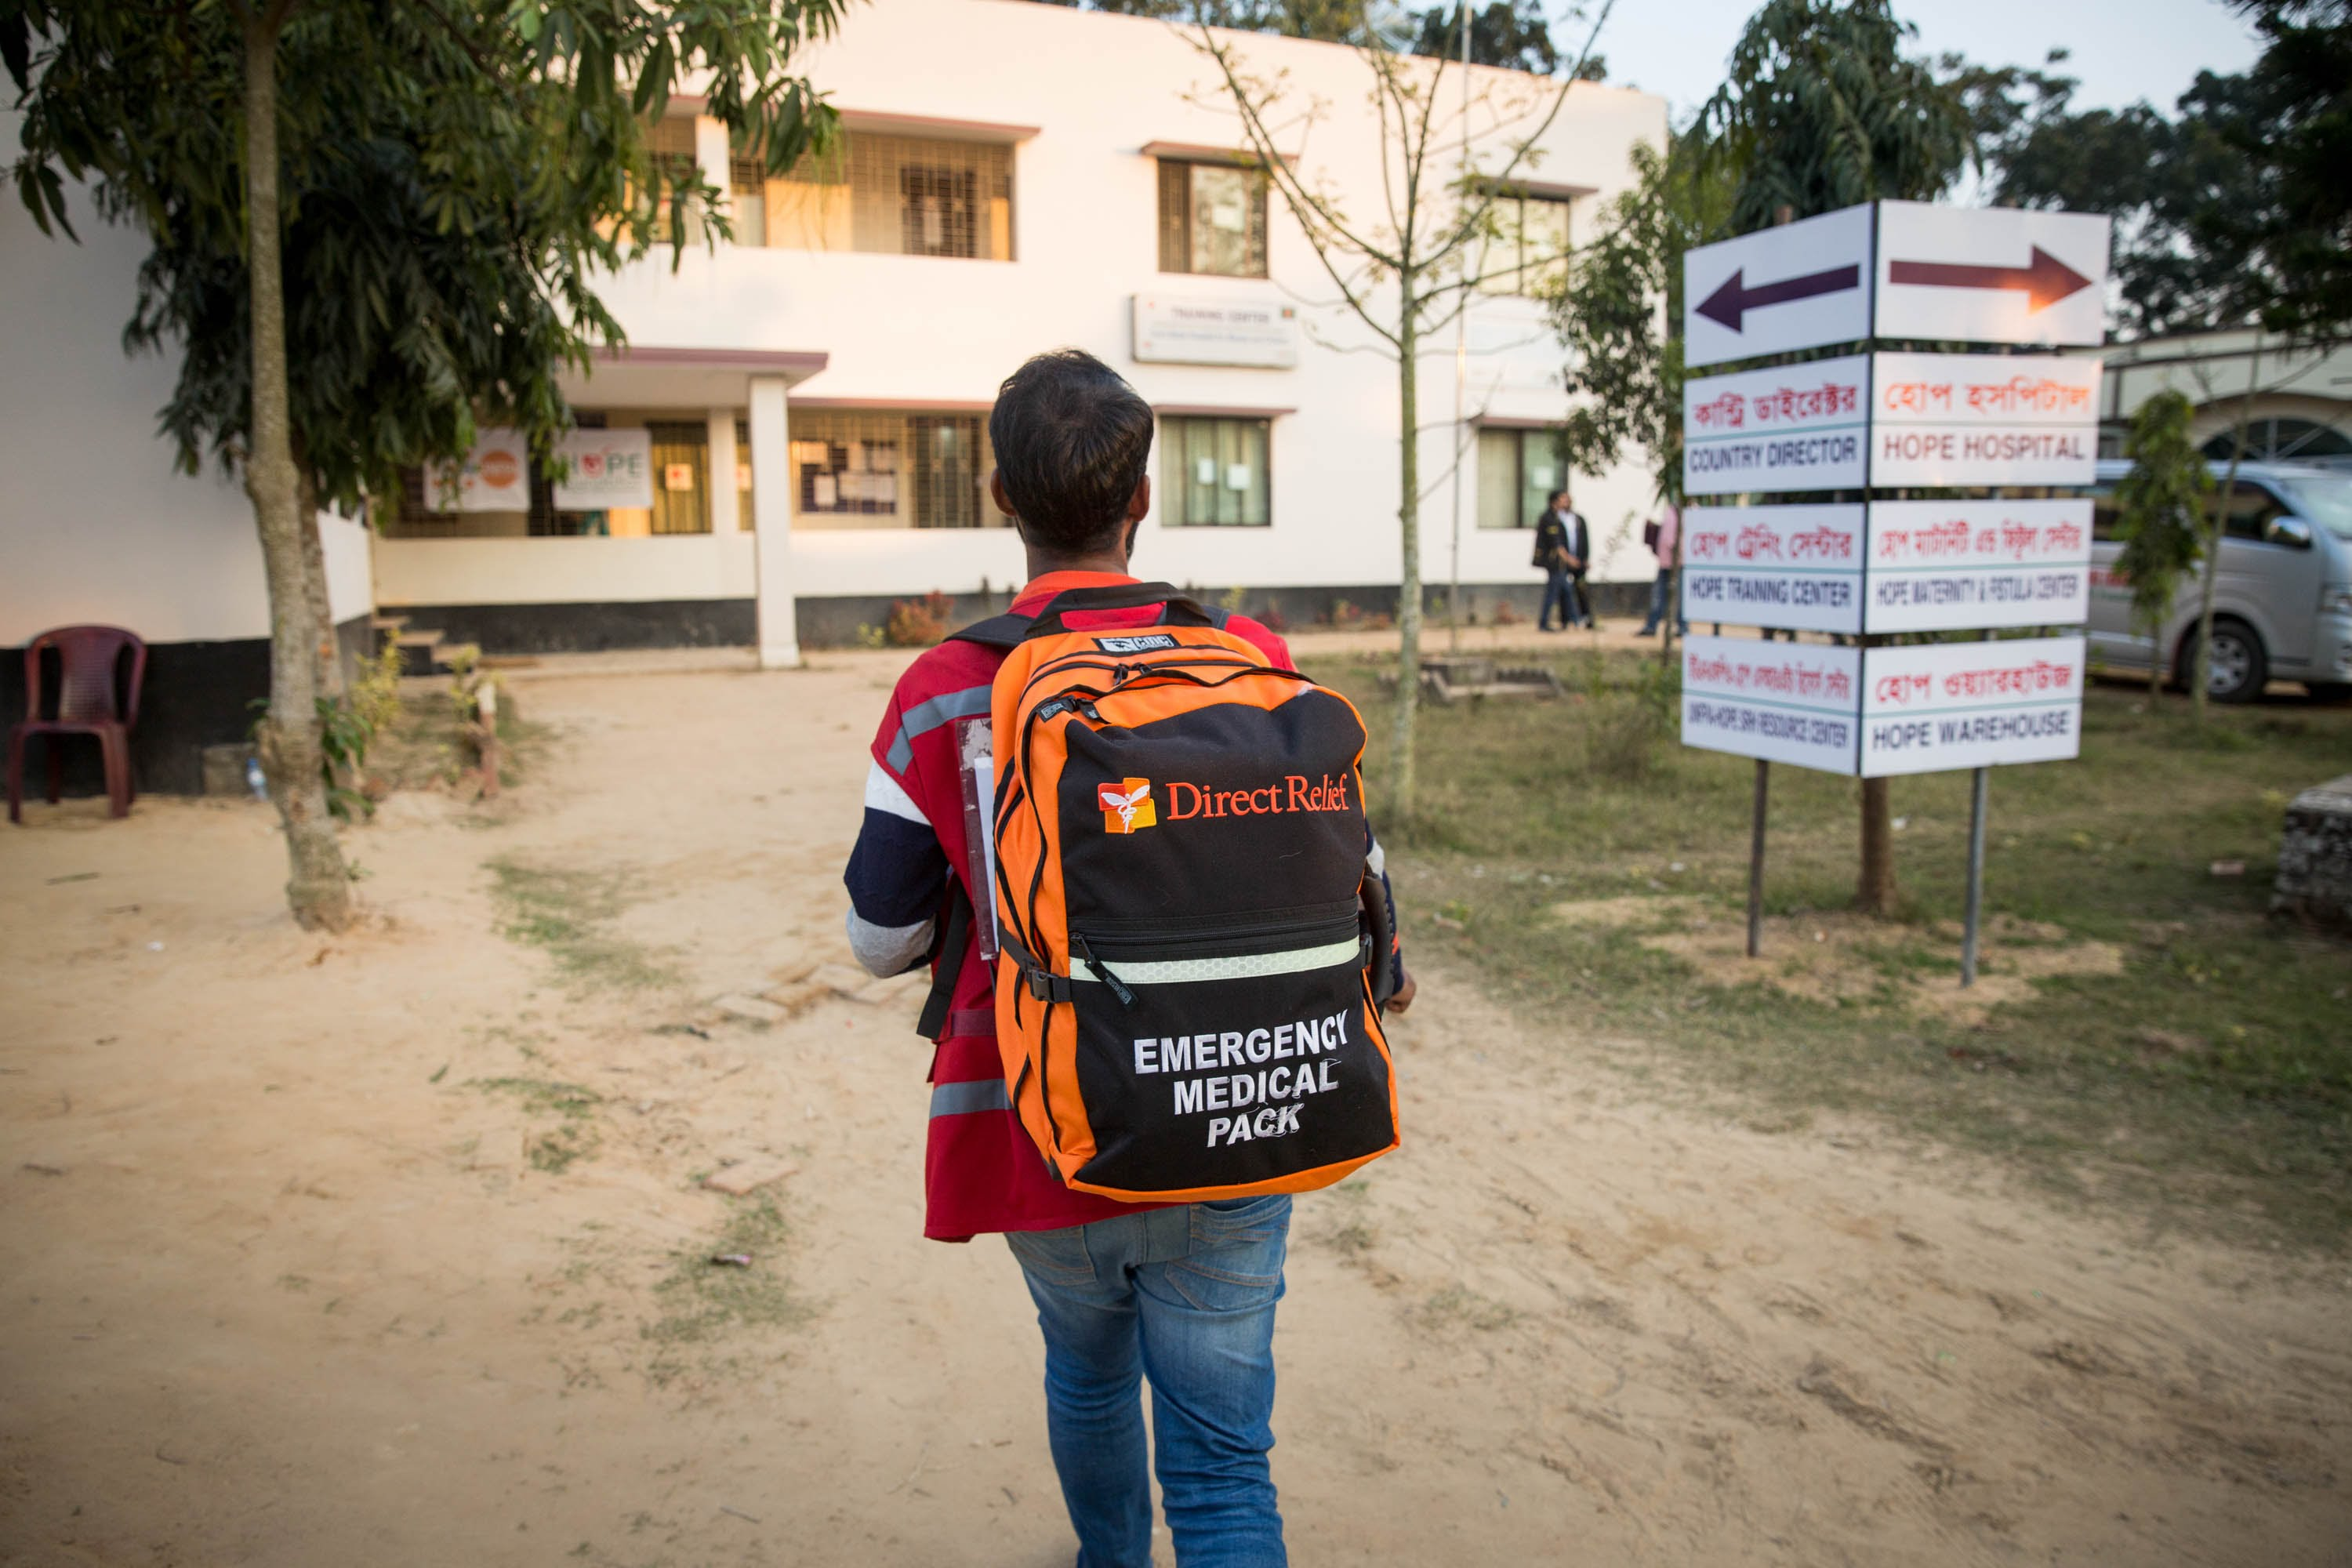 A volunteer carrying a Direct Relief Emergency Medical Backpack on January 19, 2018, in Cox's Bazar, Bangladesh. (Photo by Rajib Dhar for Direct Relief)